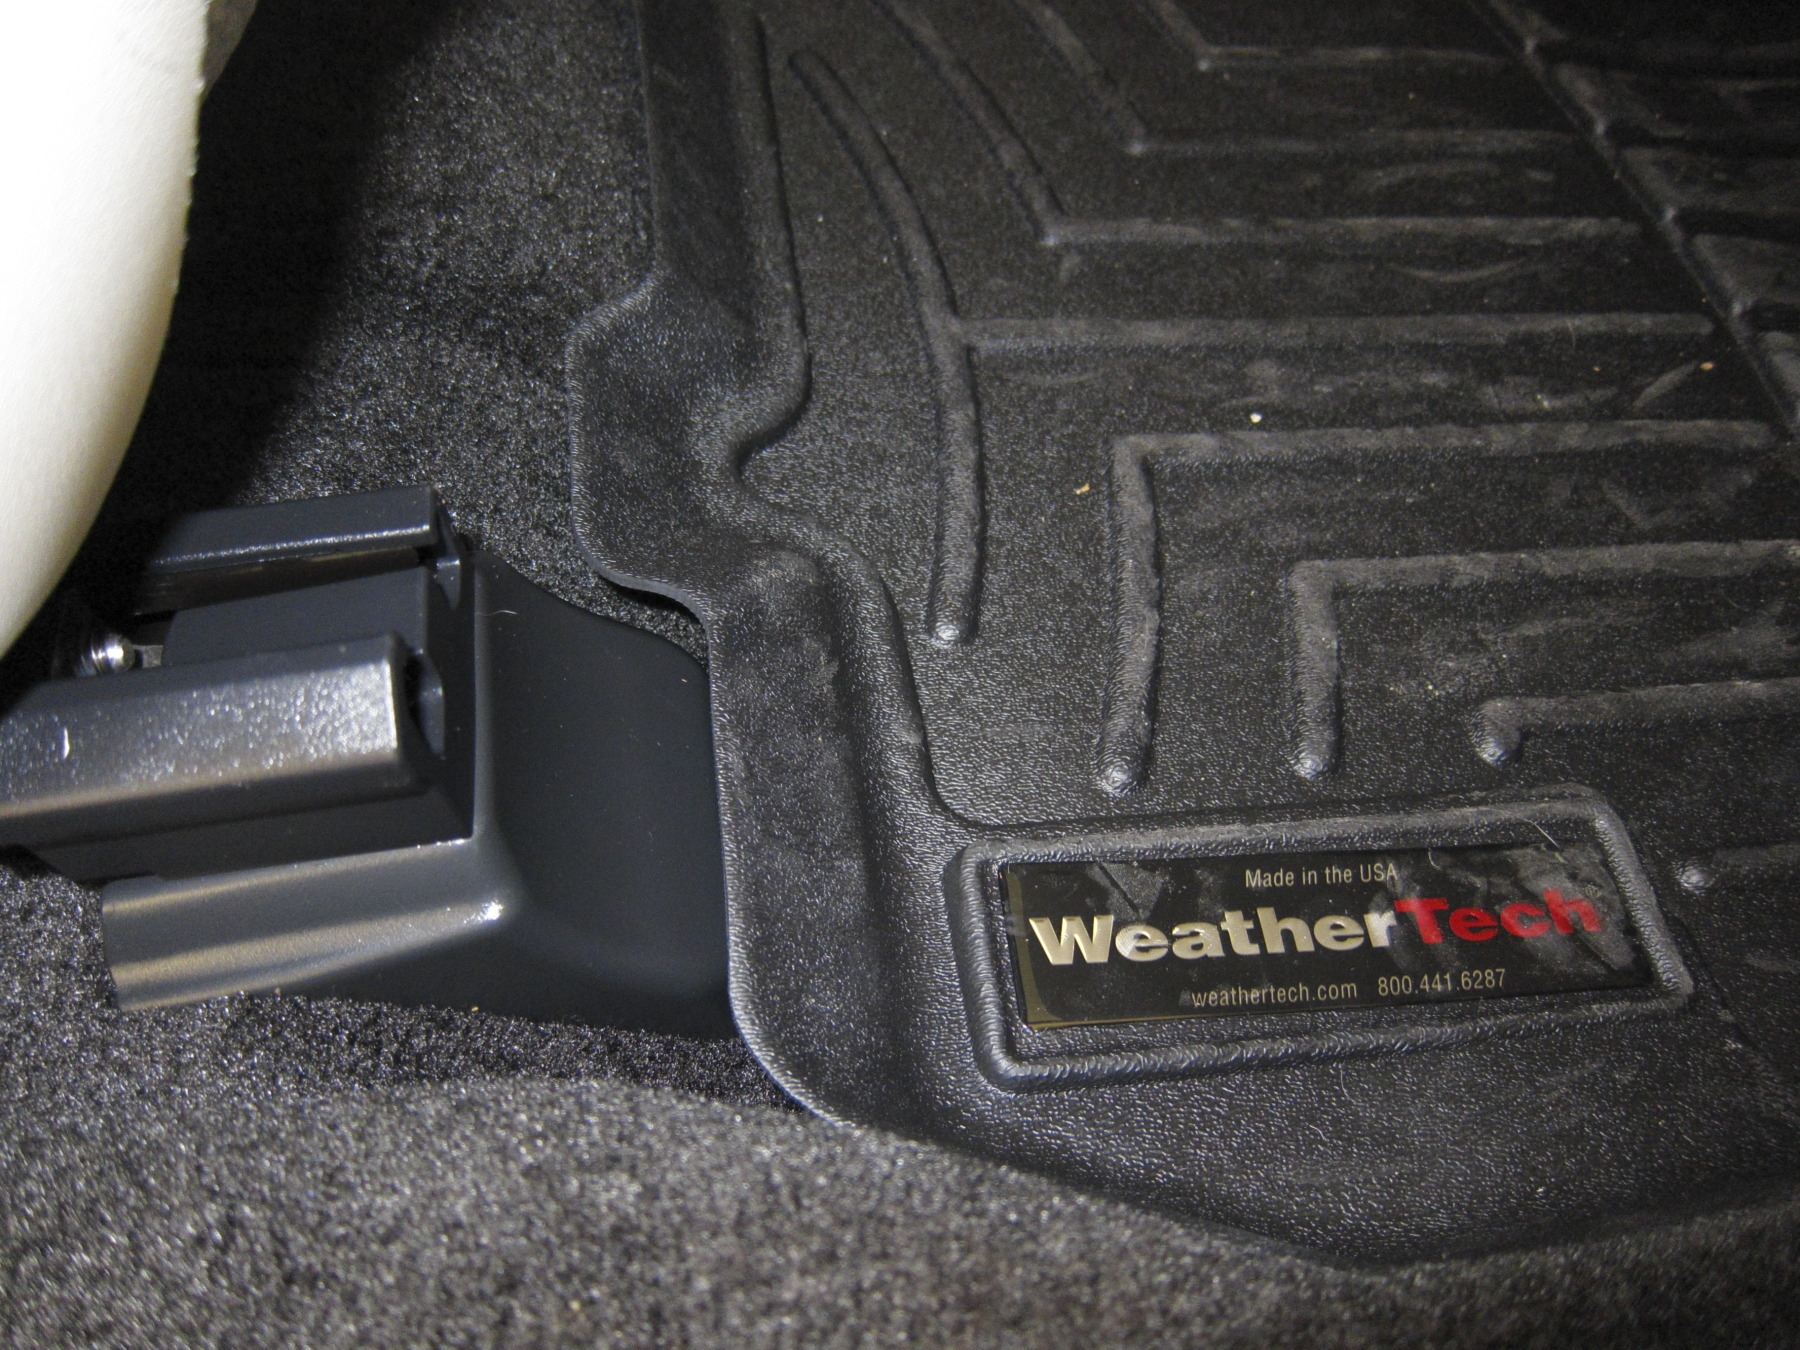 2012 Outback Weathertech floor mats help  Subaru Outback